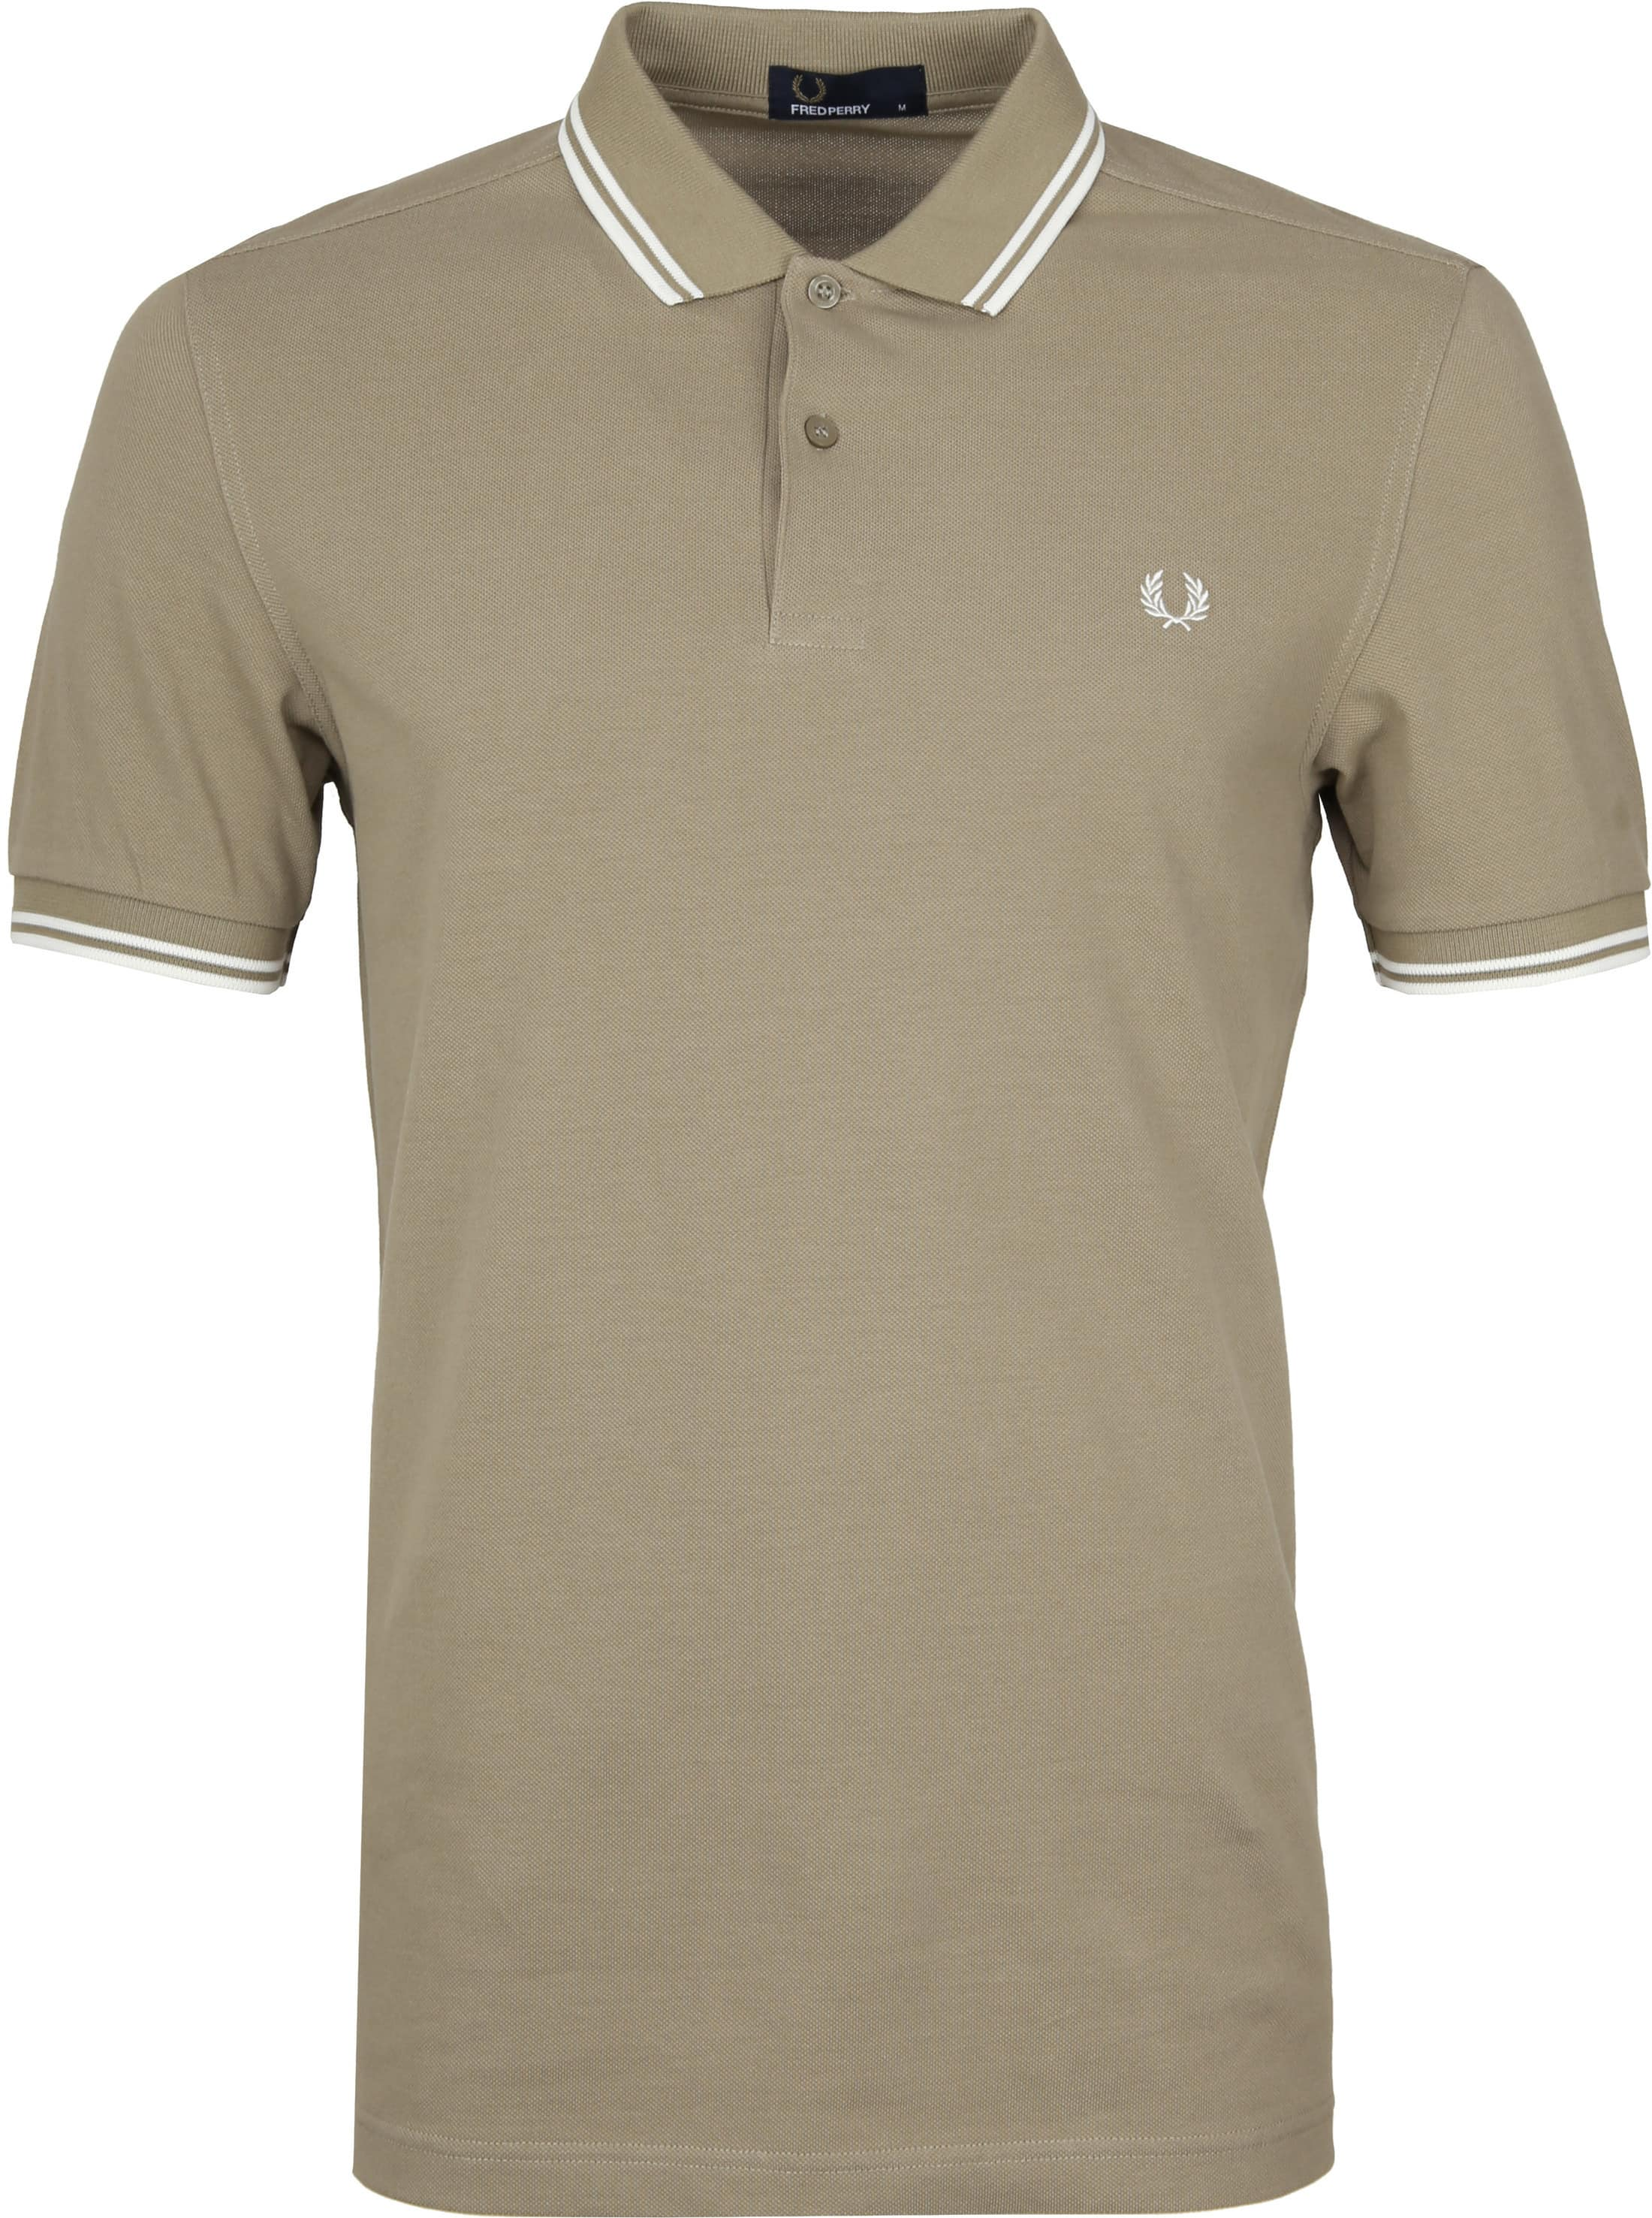 Fred Perry Poloshirt Beige H04 foto 0